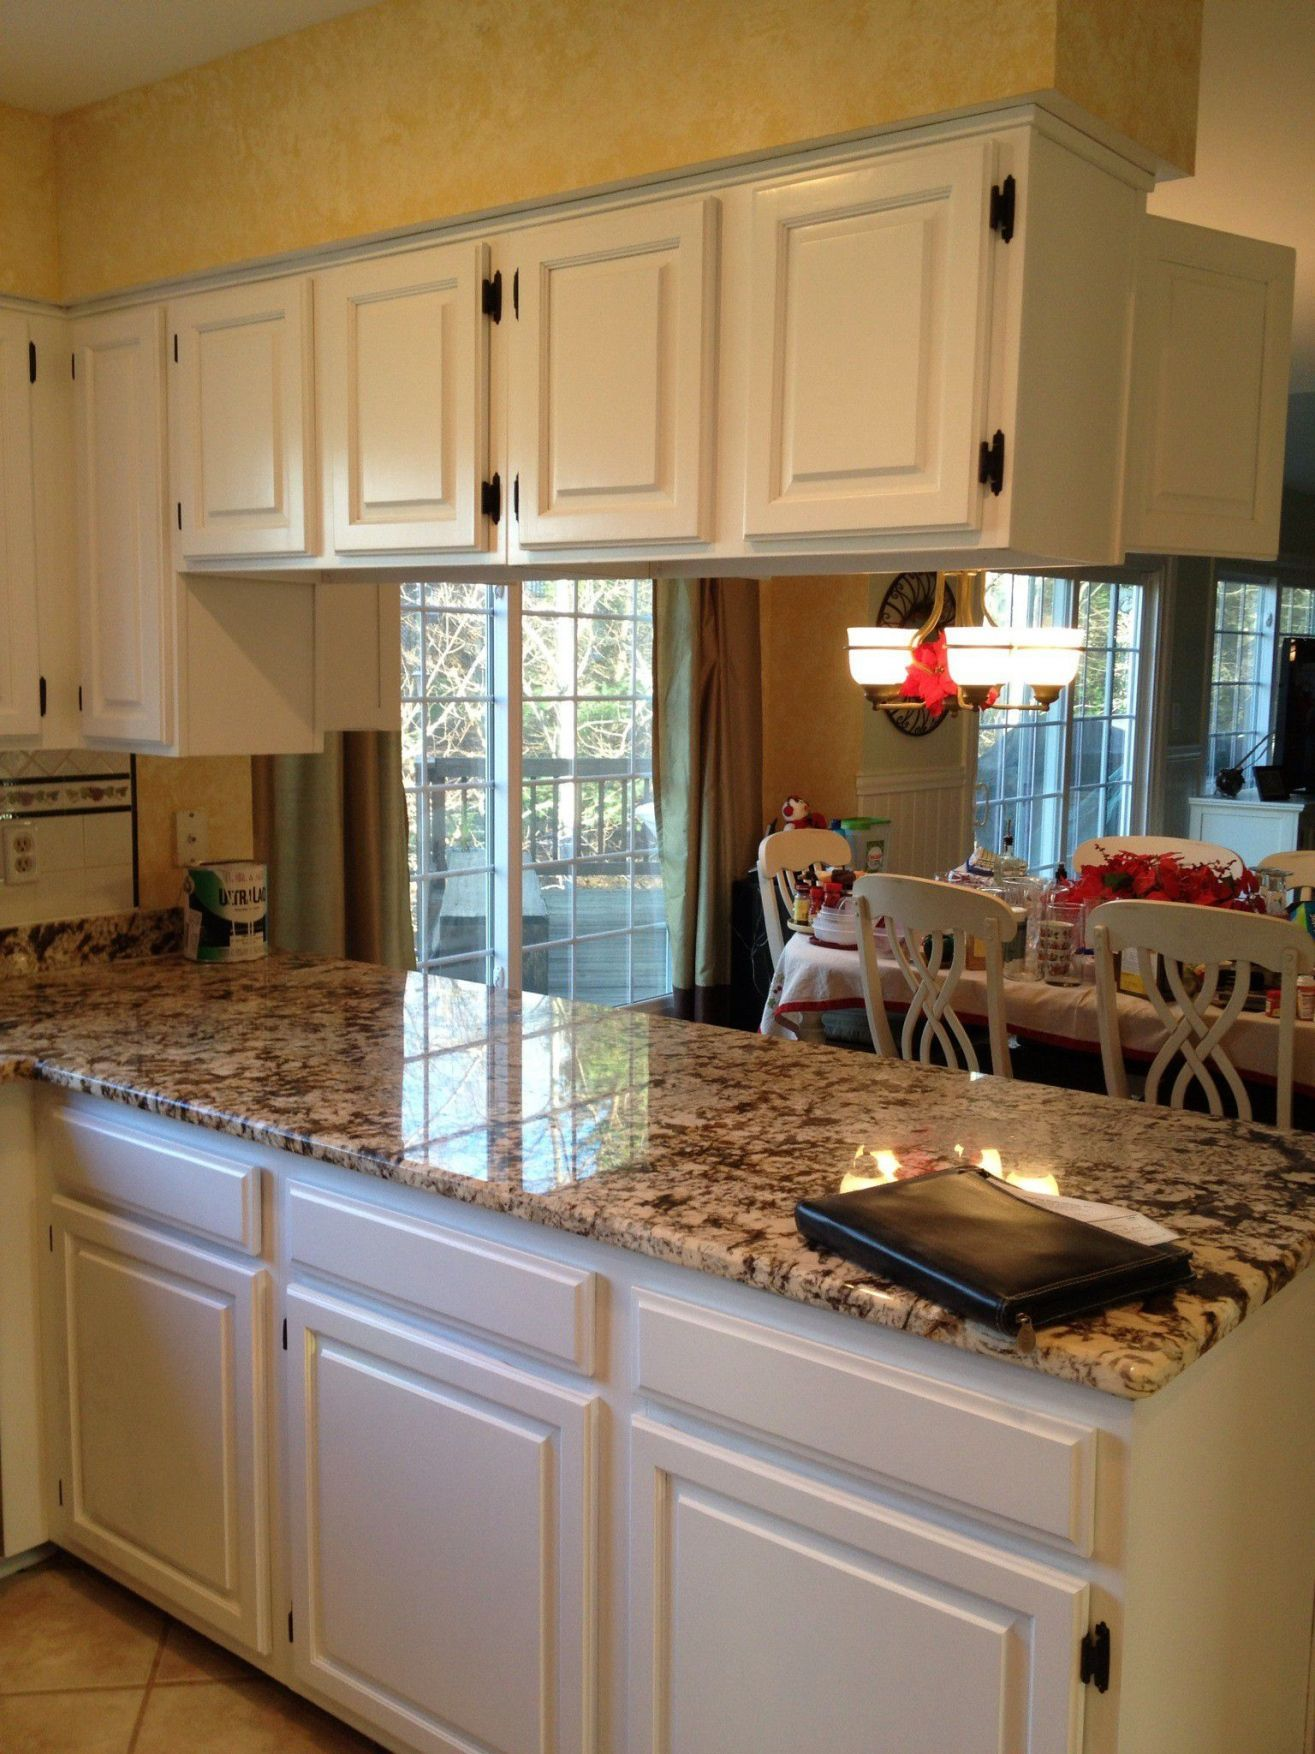 70+ Kitchens with White Cabinets and Granite Countertops ...